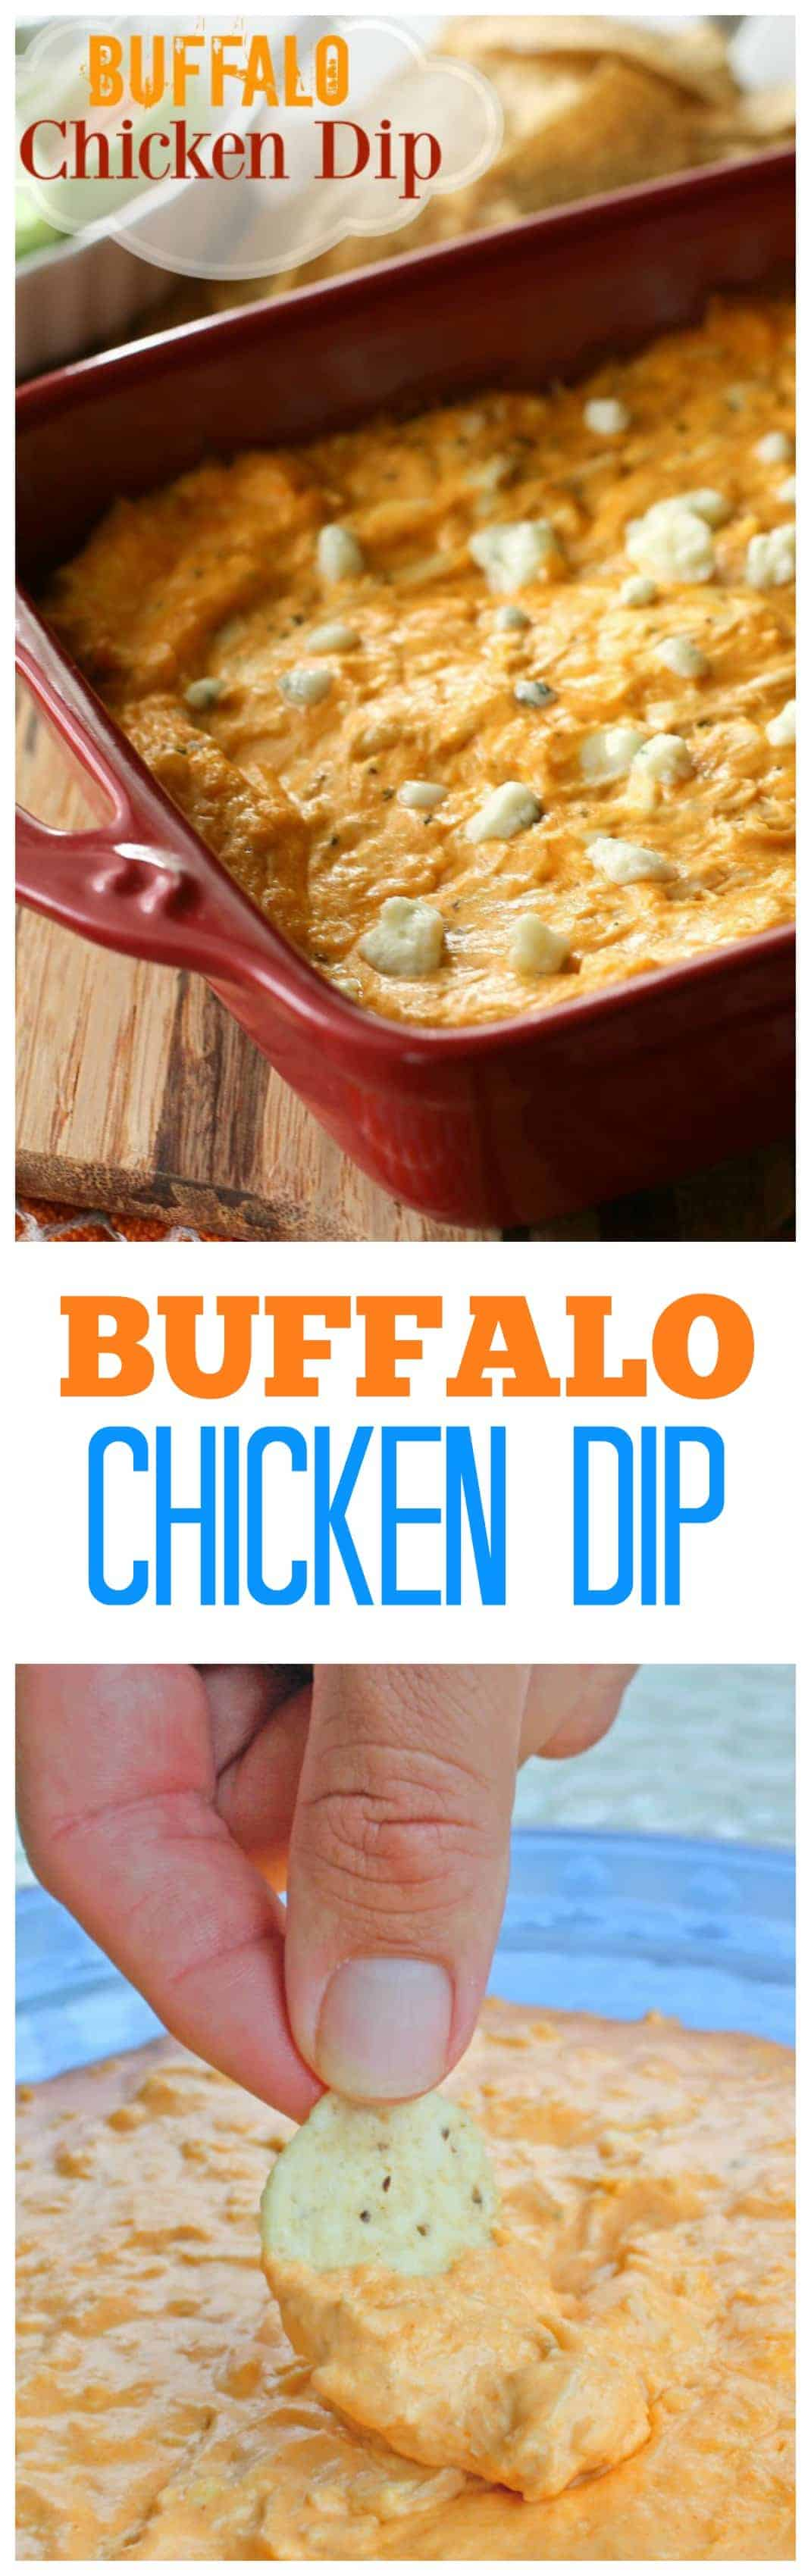 Buffalo Chicken Dip - we eat this almost every Sunday! A tried and true favorite. #buffalo #chicken #dip #appetizer #recipe #footballfood